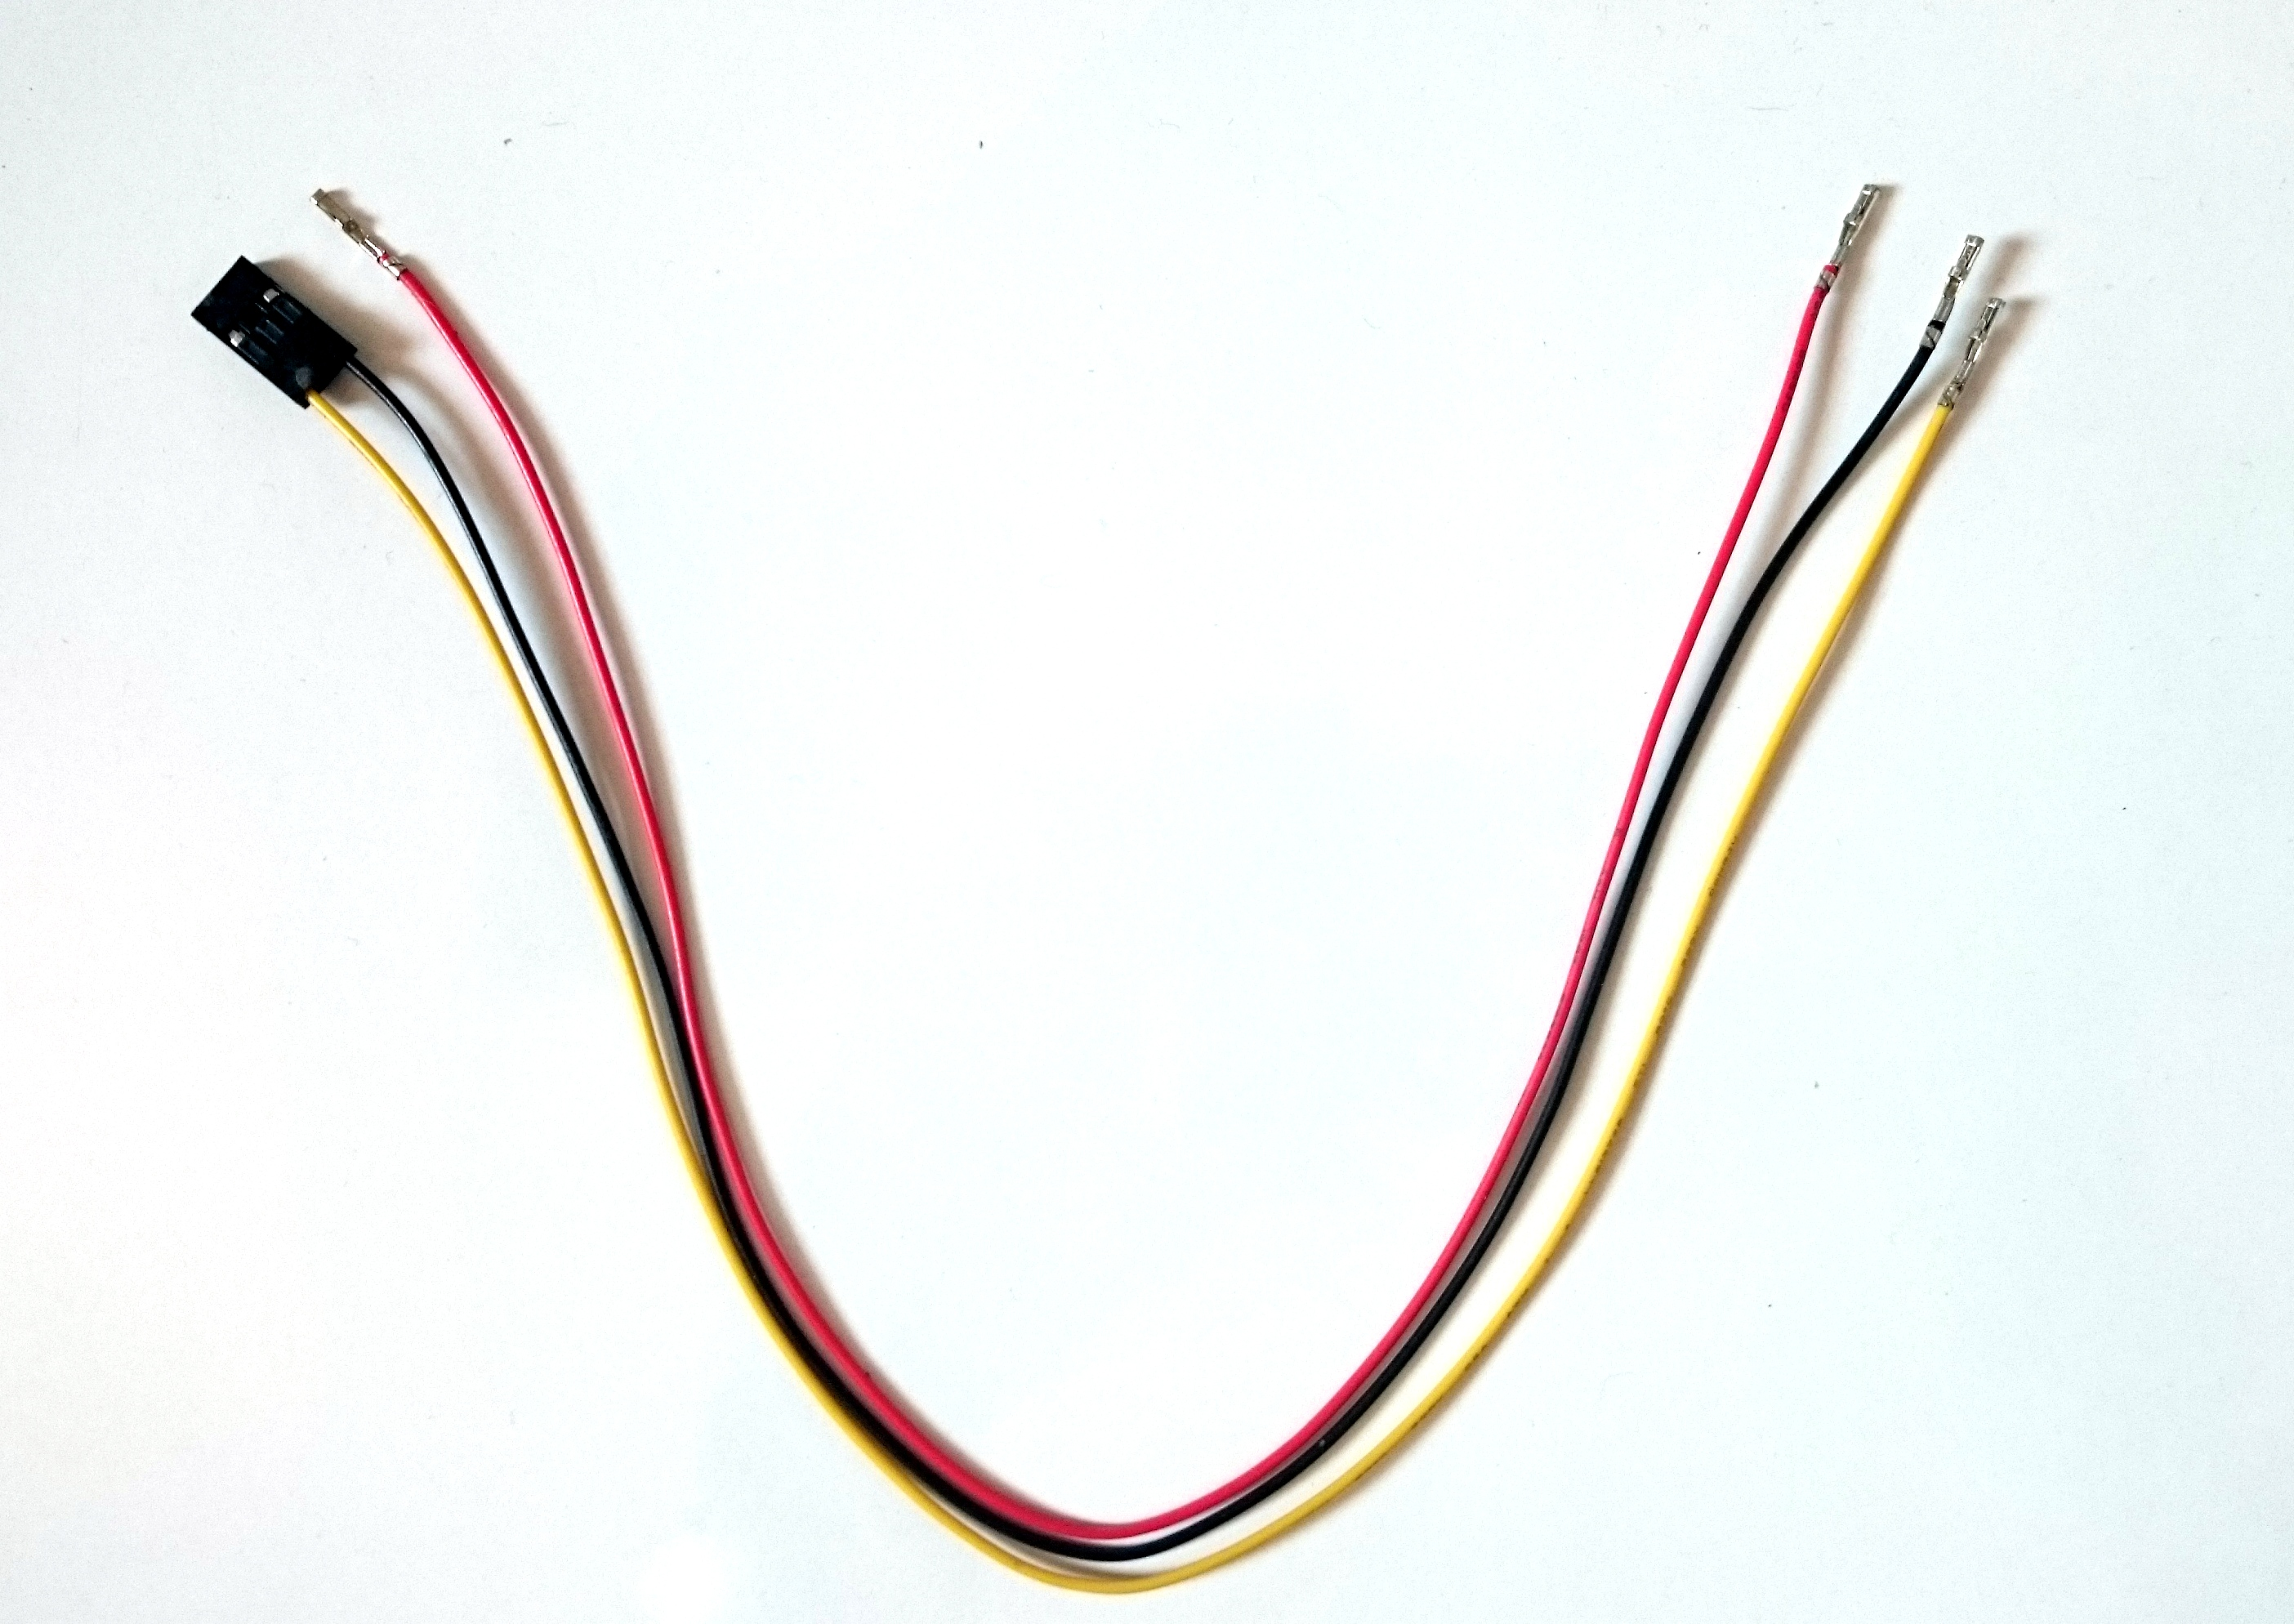 Picture of Prepping the Connection Cable